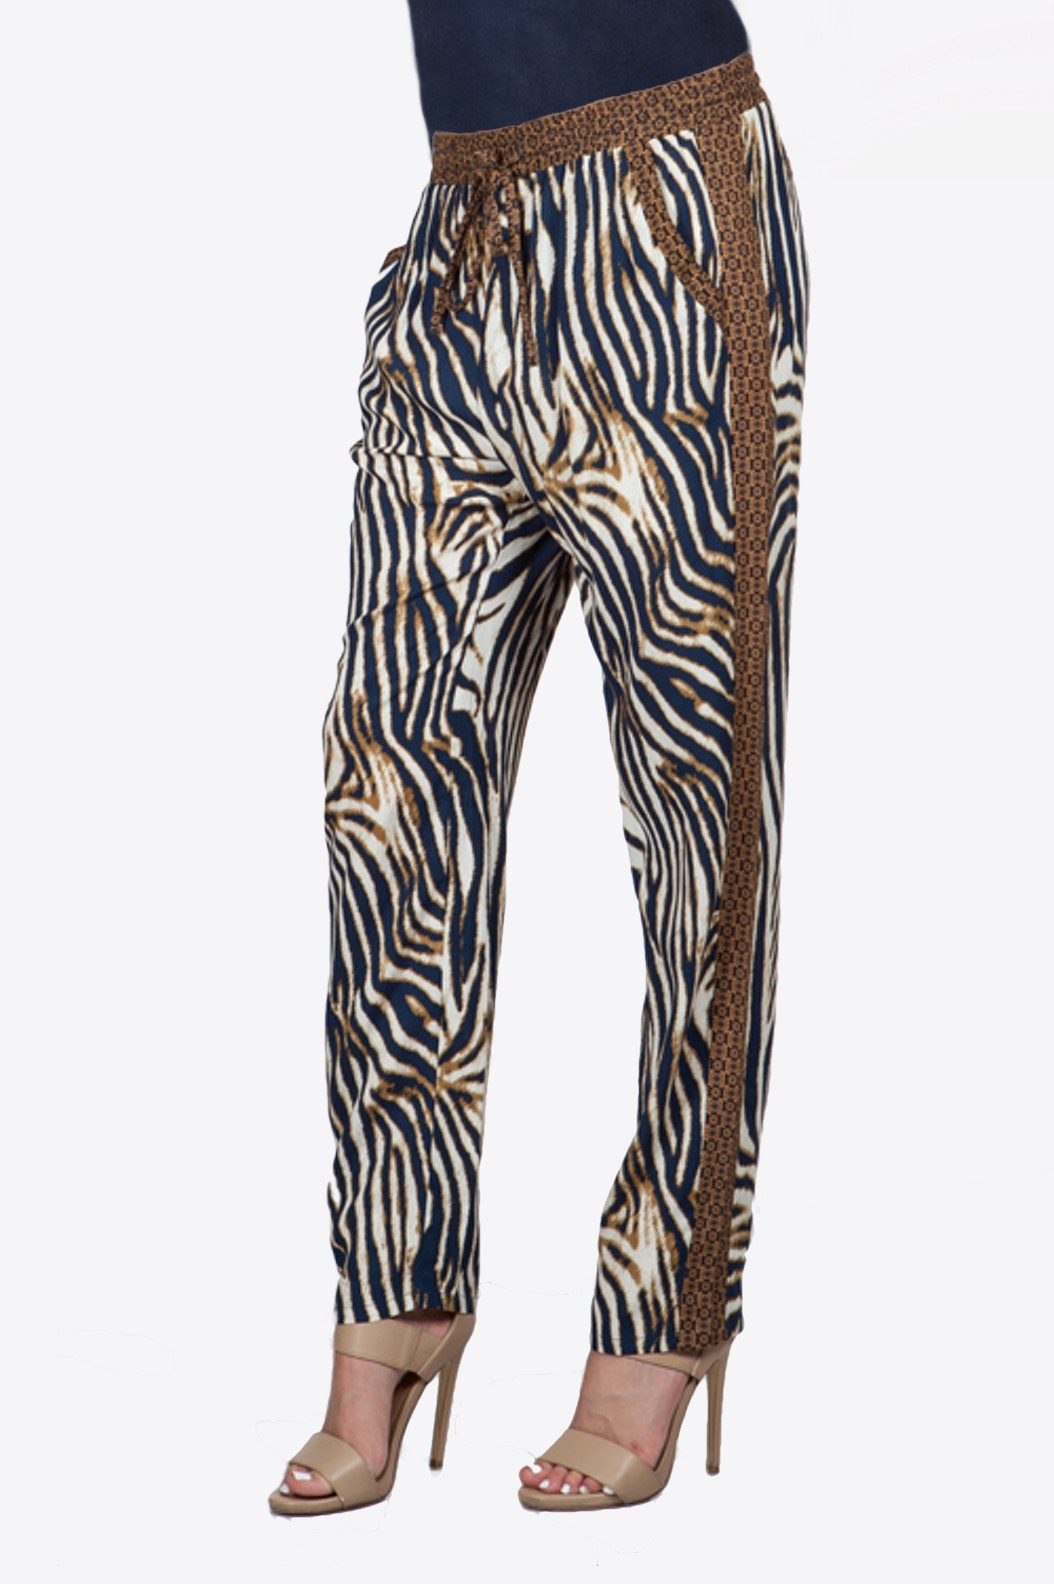 Navy and Camel Leopard Pants